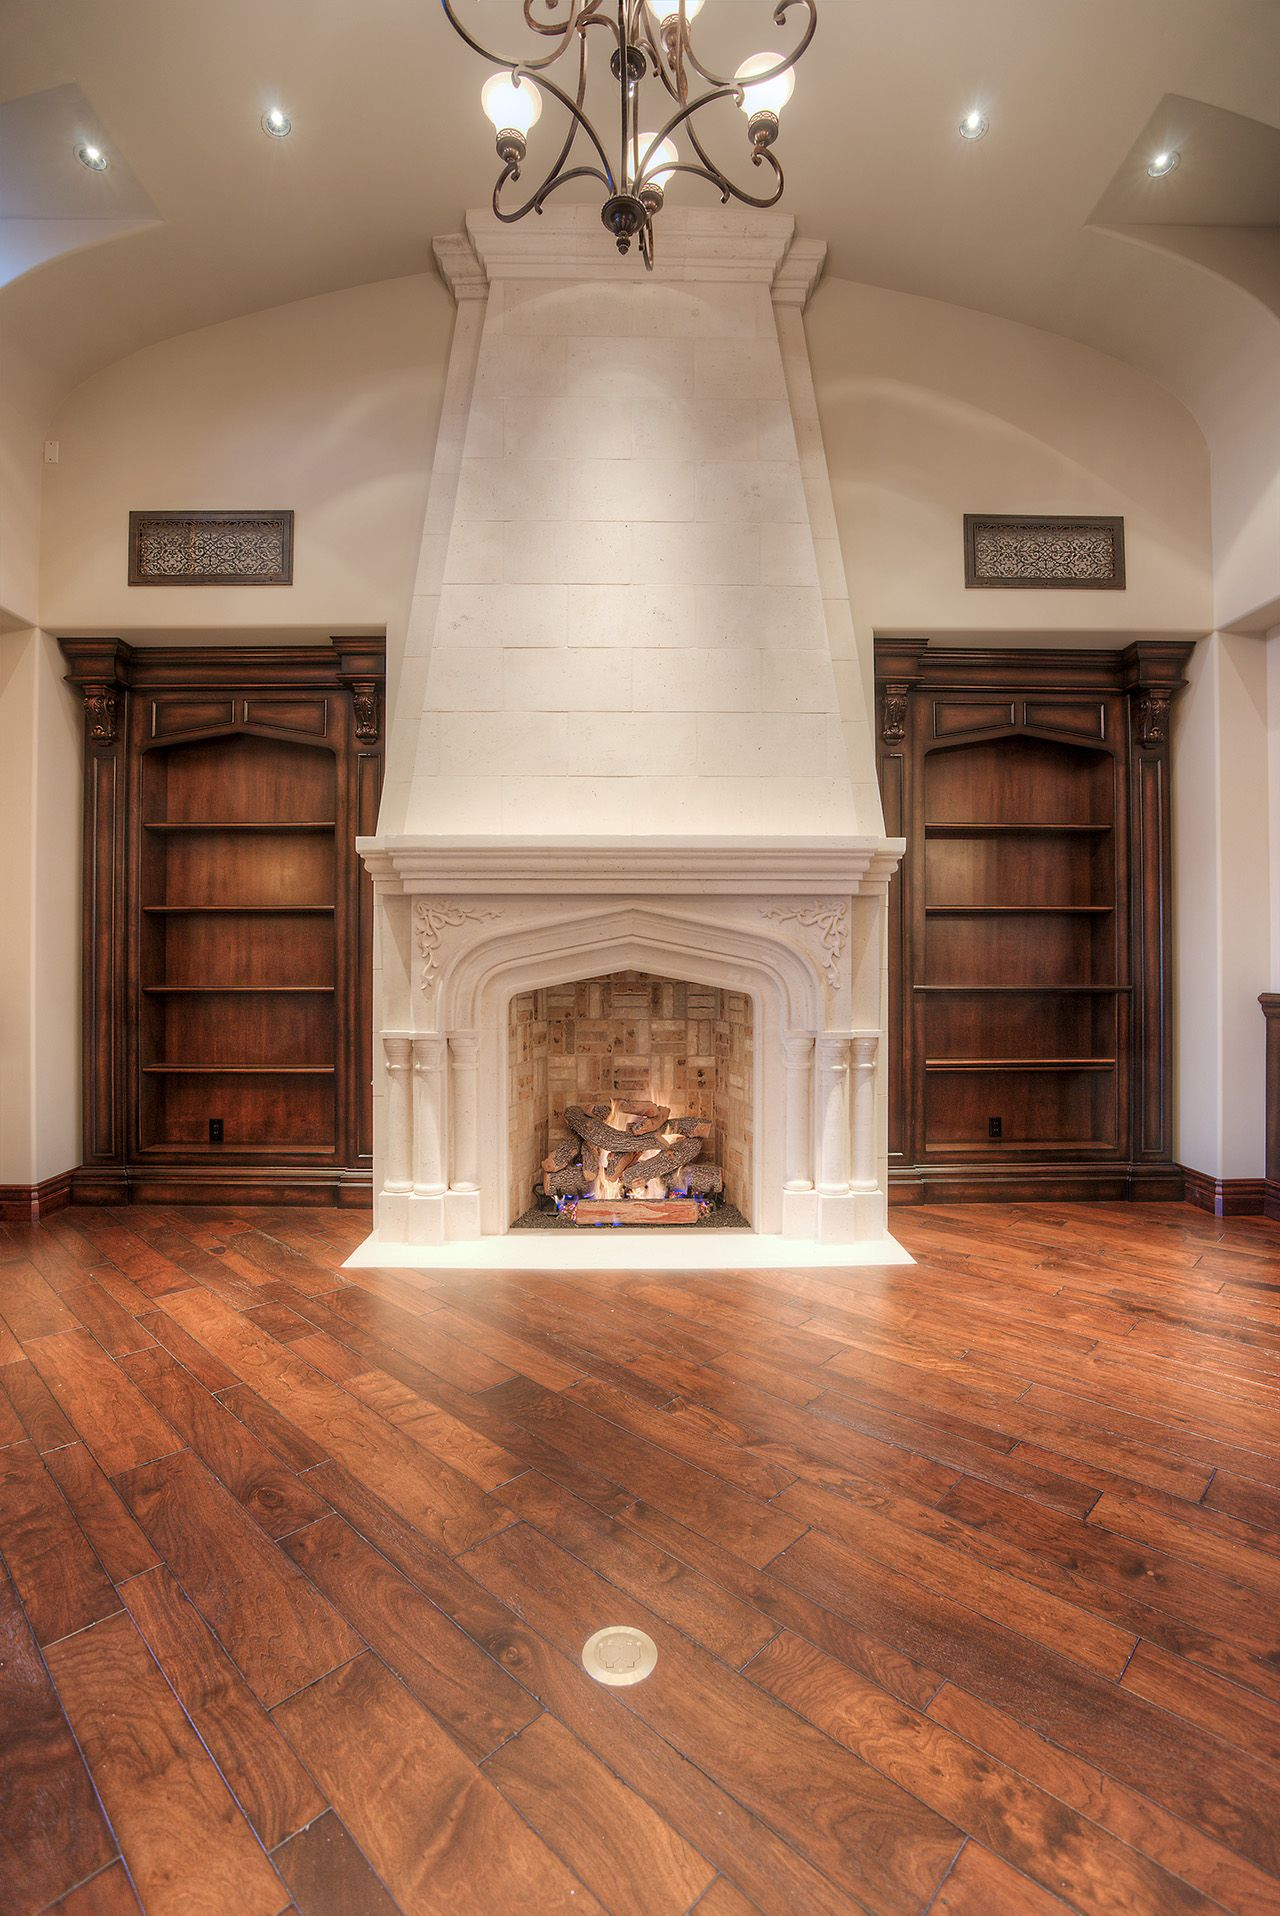 Elegant Stone Fireplace With Built In Wood Book Shelves On